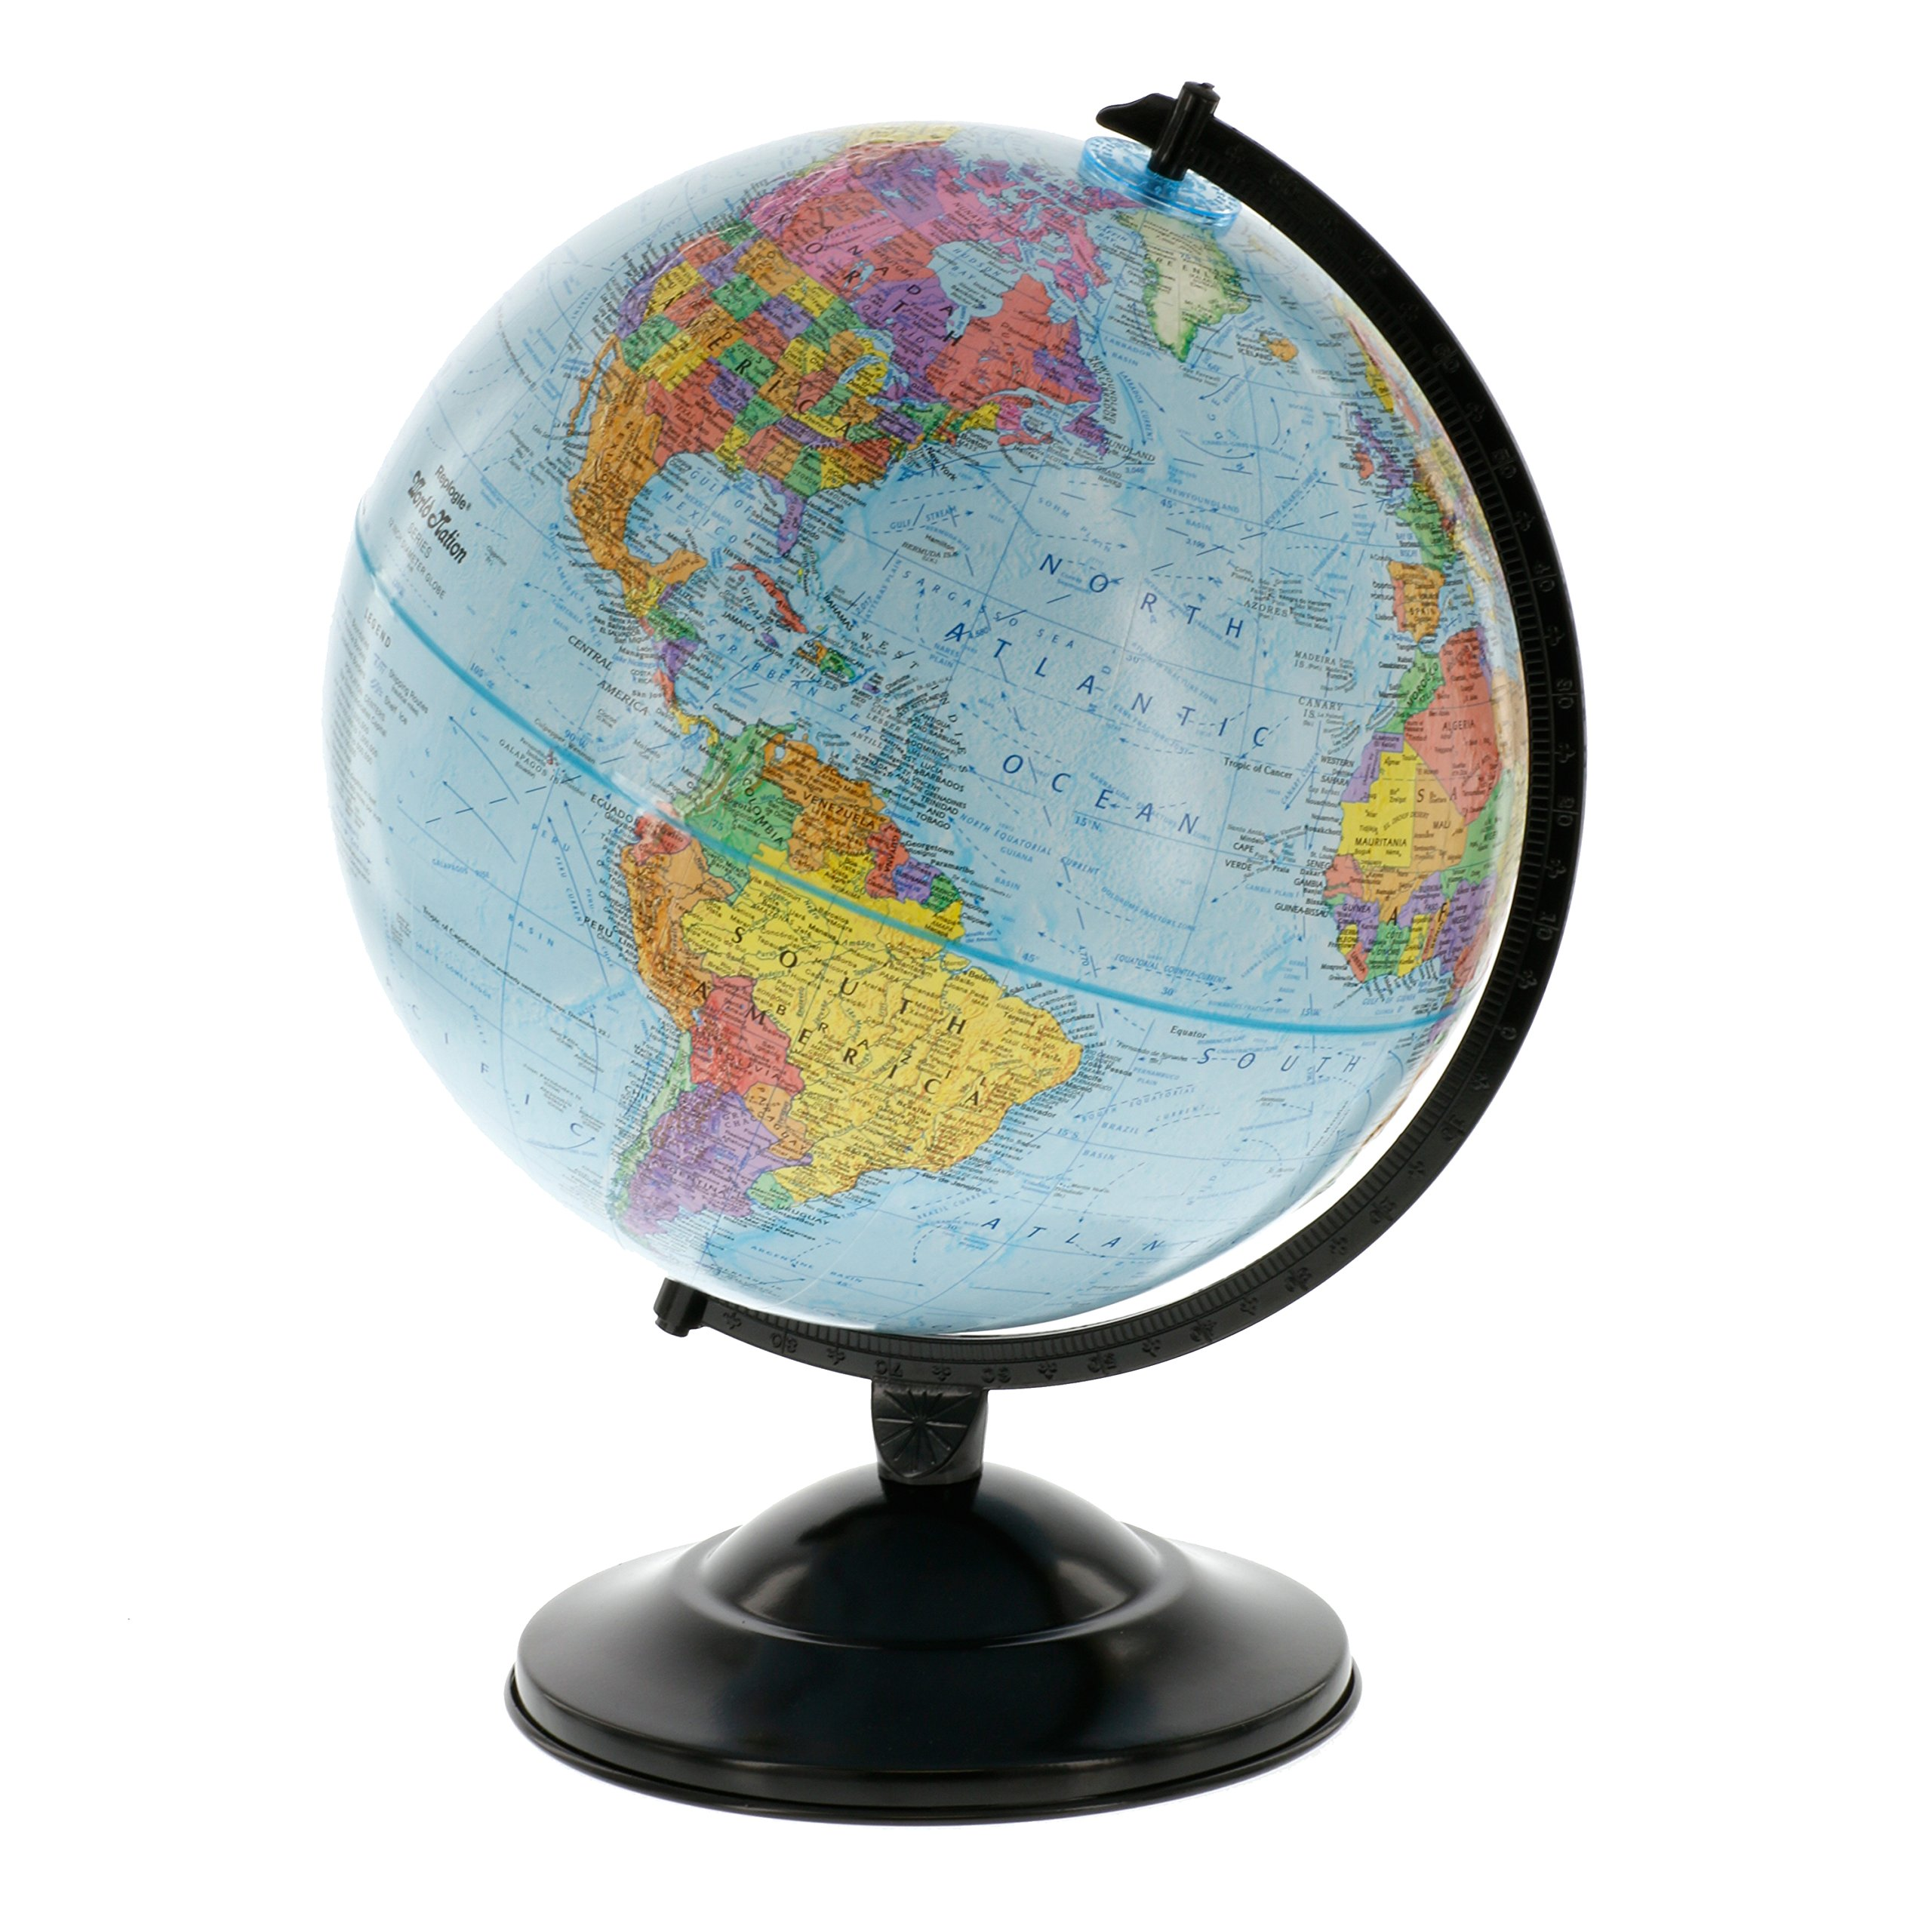 Globe 12 inch - Blue Ocean Educational Raised Relief Political - 2015 Country Lines by Replogle